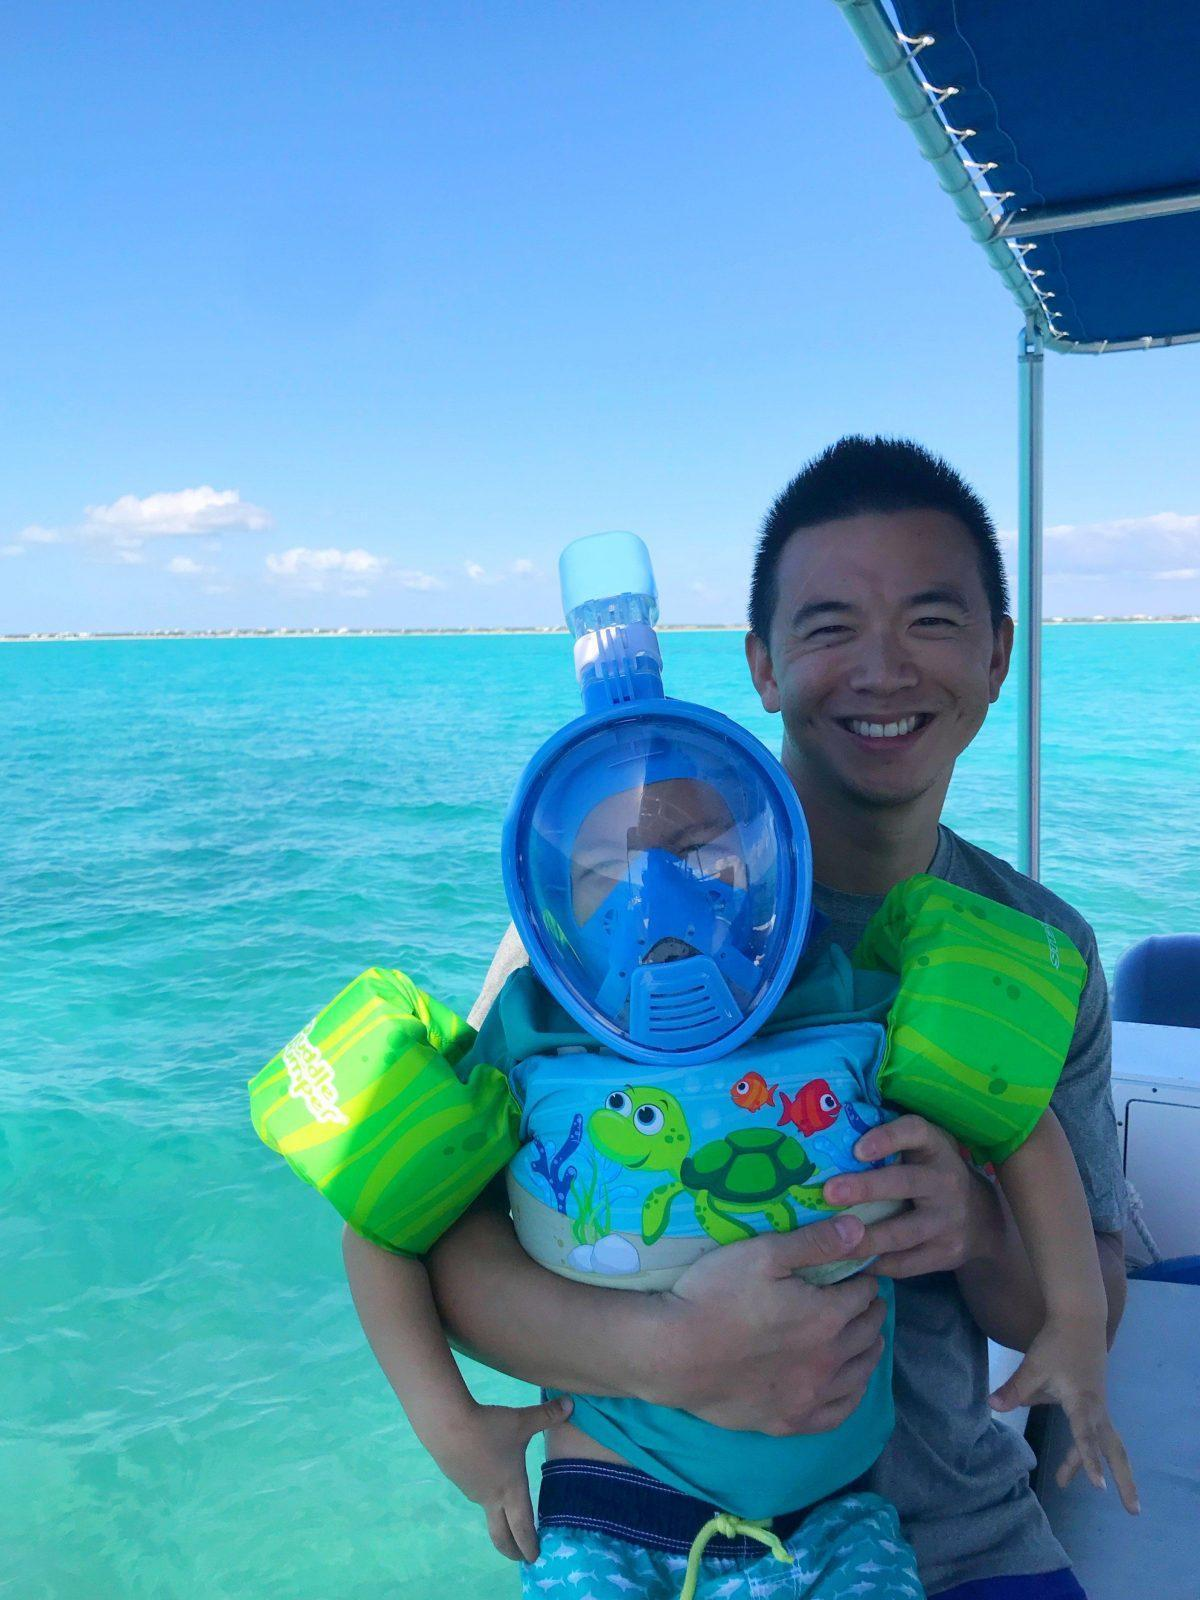 The best Snorkel Mask for Kids